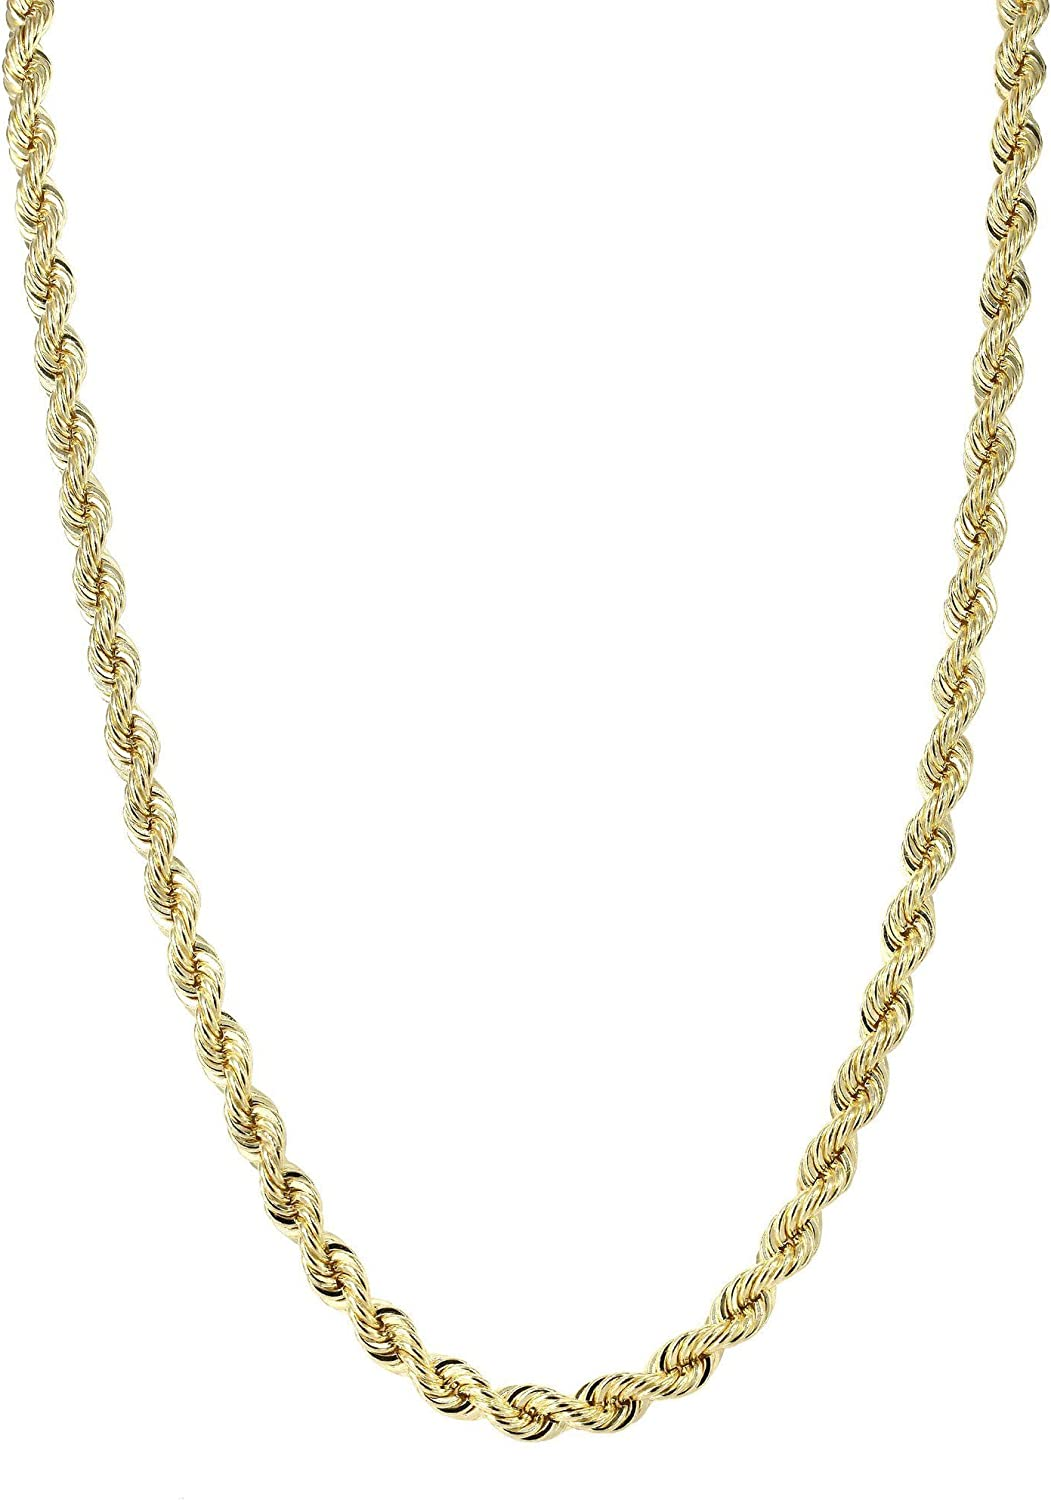 14k SOLID Yellow Gold 1.5mm Shiny Royal Solid Rope Chain Necklace for Pendants and Charms with Lobster-Claw Clasp (16